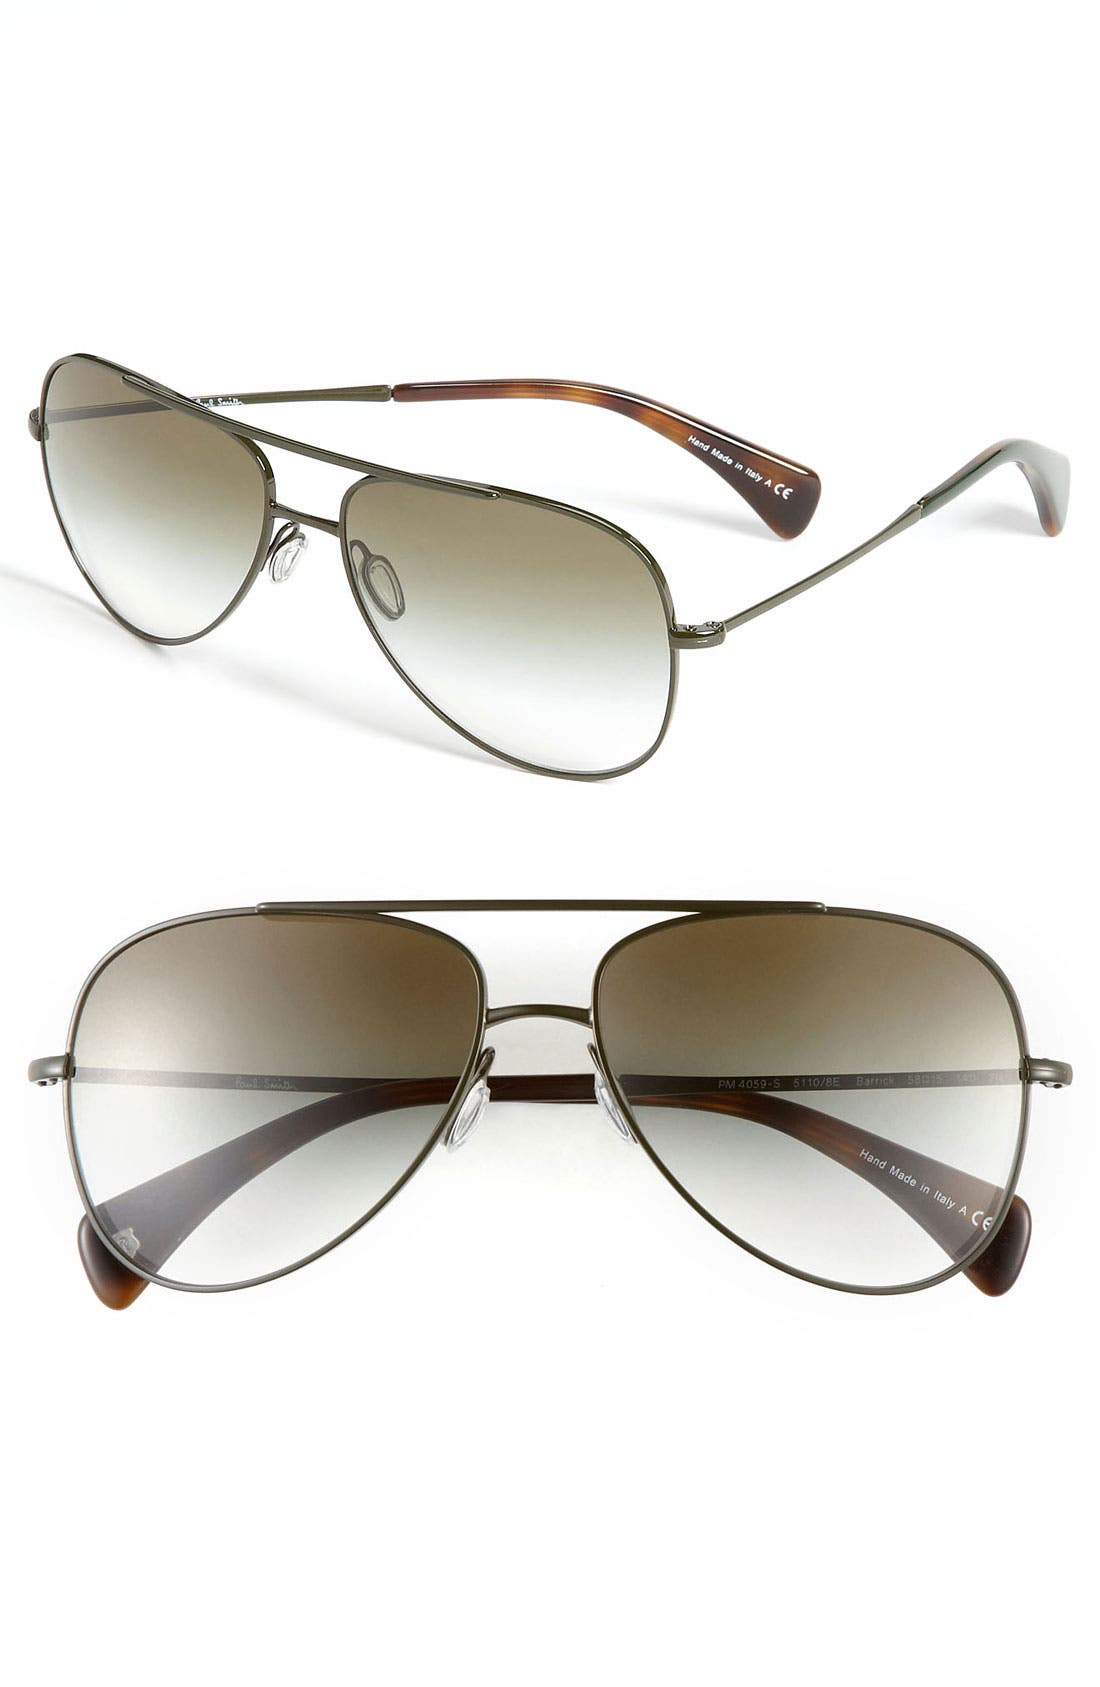 Alternate Image 1 Selected - Paul Smith 'Barrick' Aviator Sunglasses